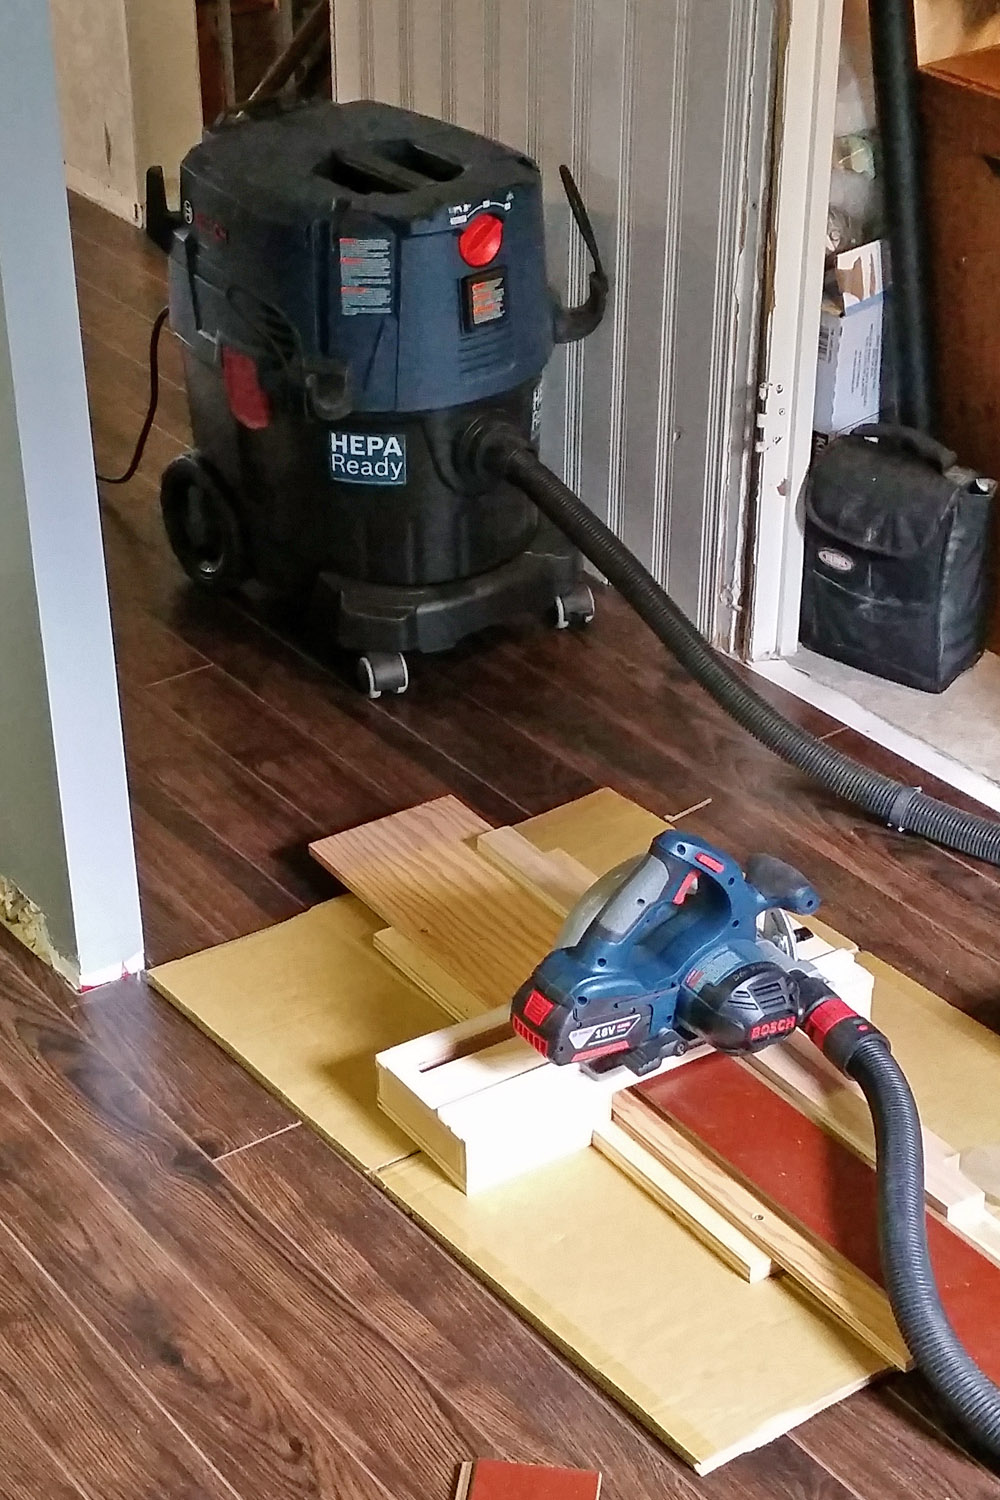 Bosch VAC090S dust extractor connected to circular saw